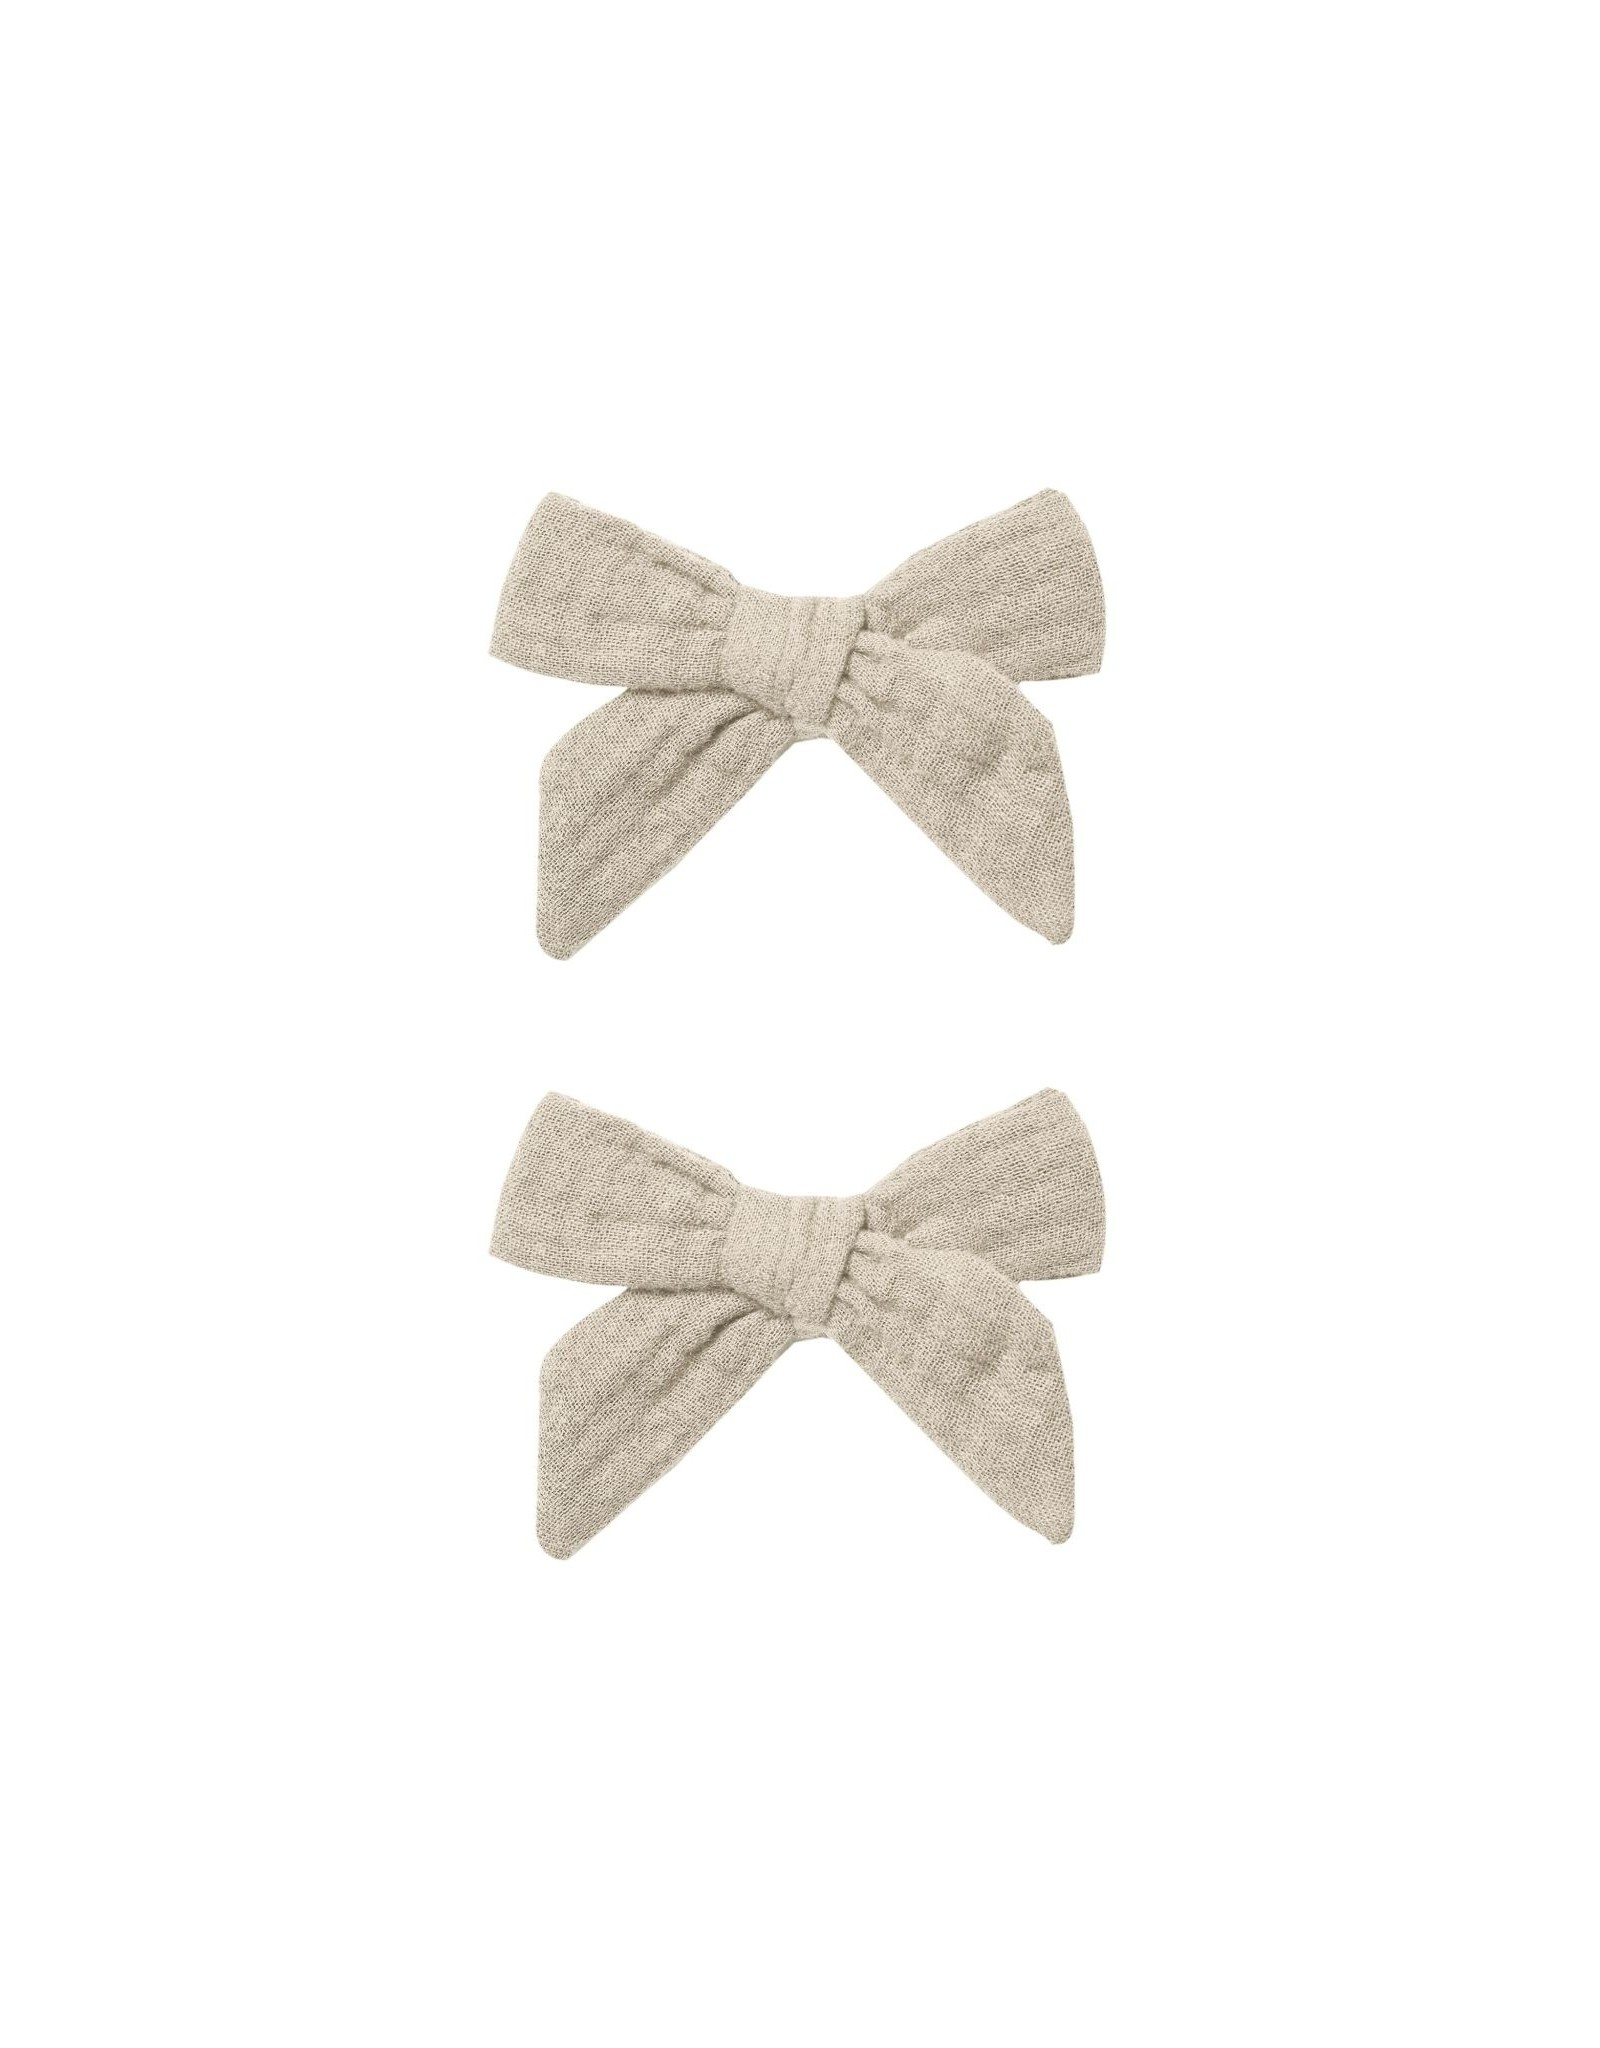 Rylee and Cru bow clip set- stone